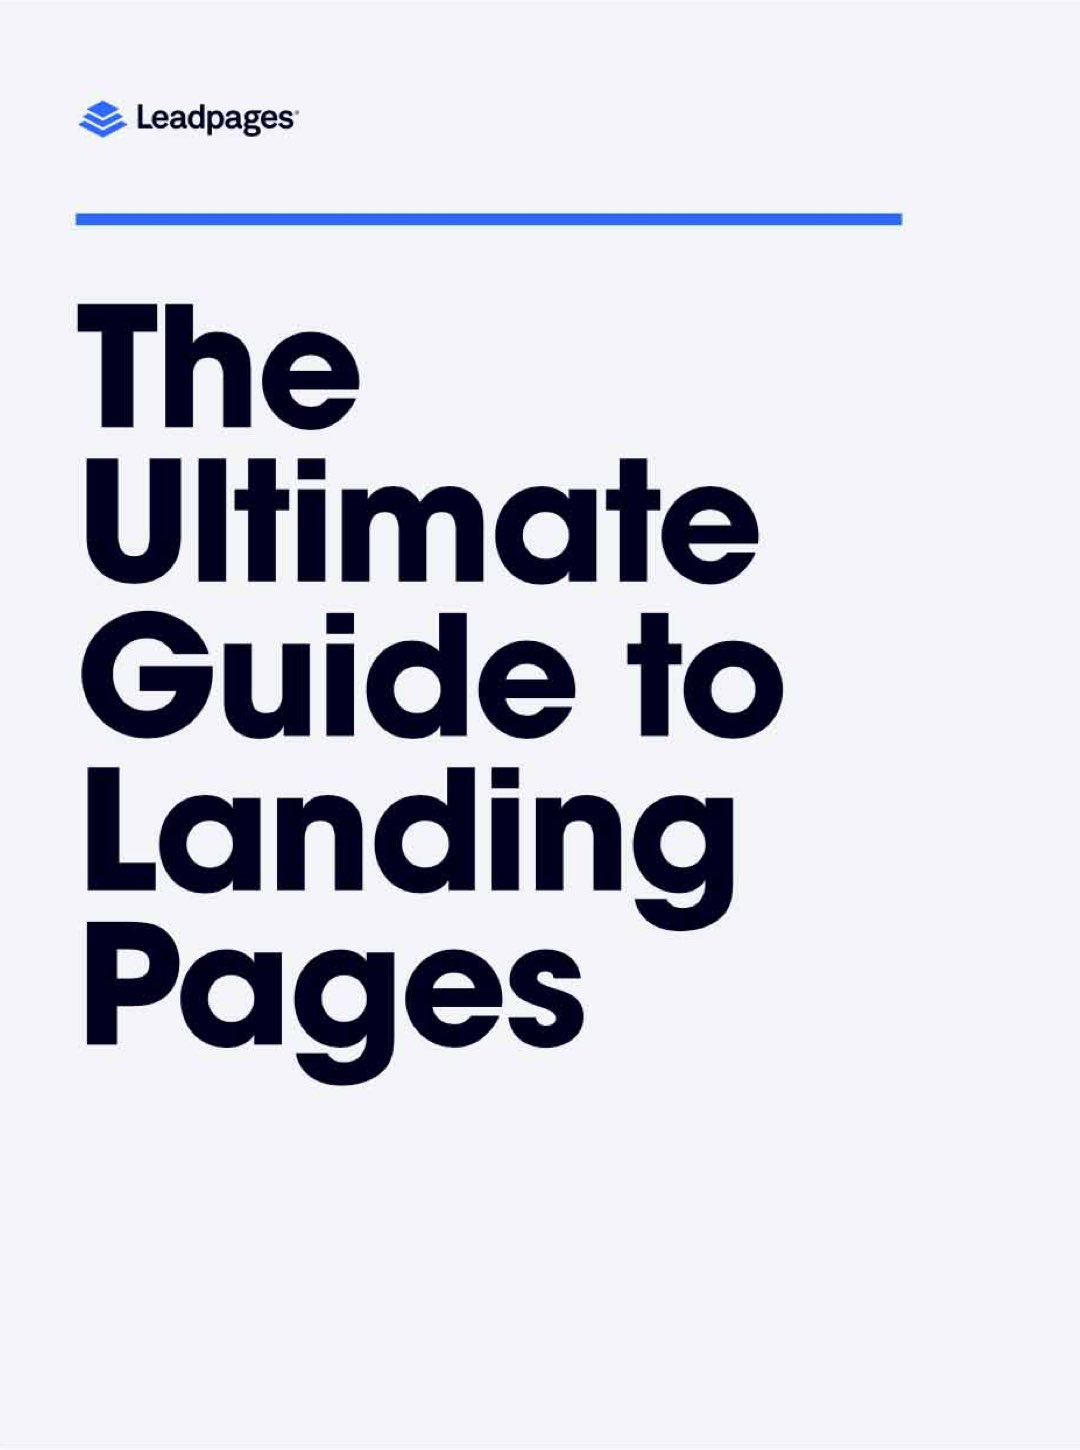 The Ultimate Guide to Landing Pages